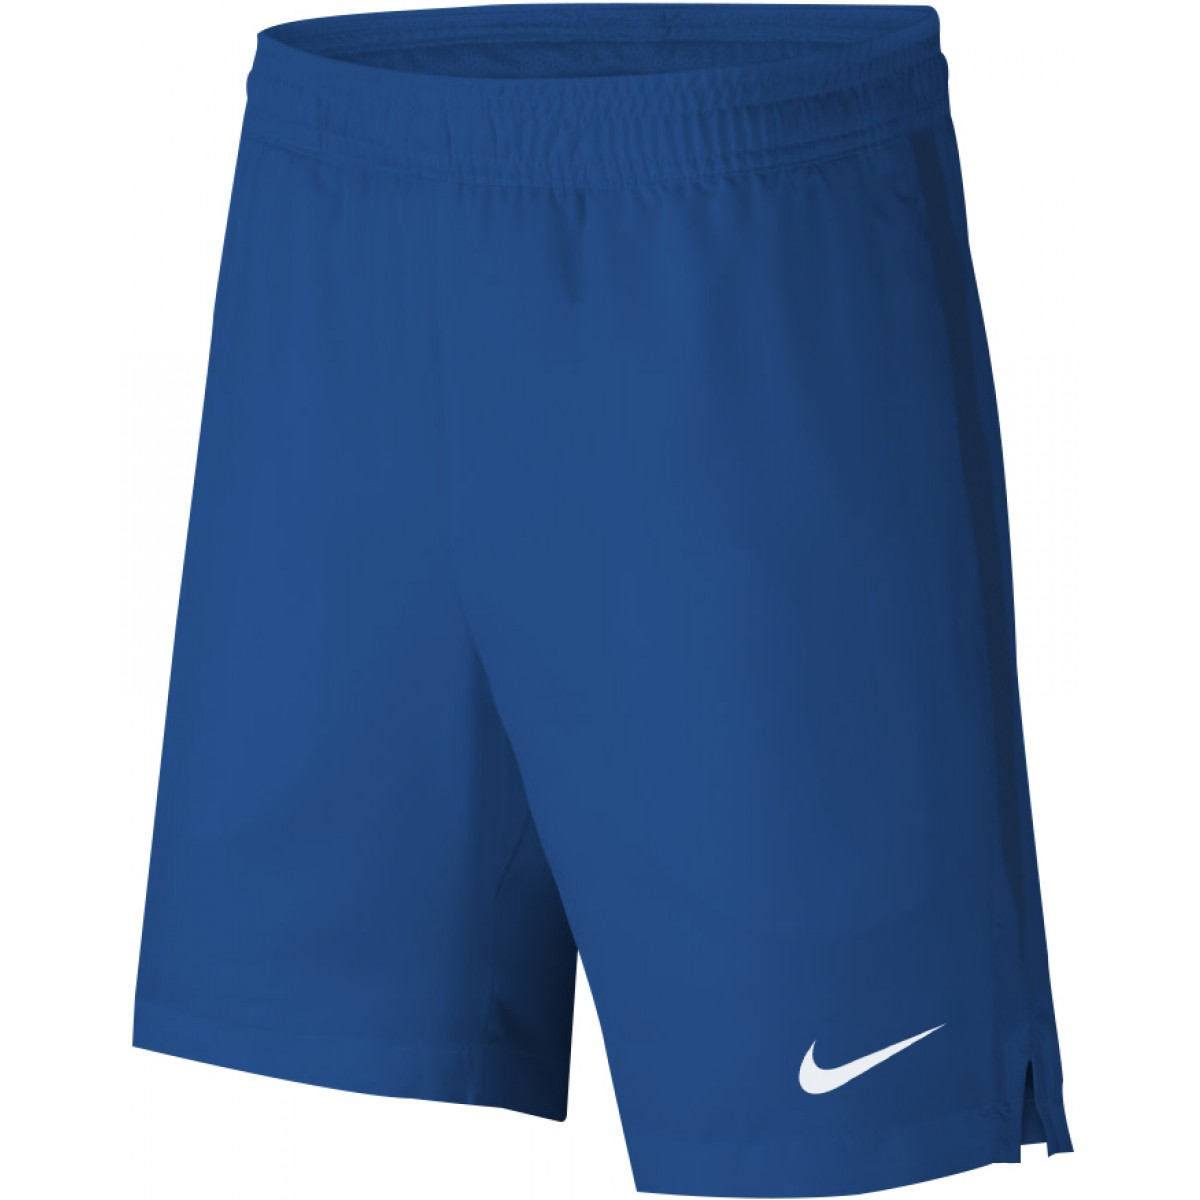 JUNIORS NIKE COURT DRY SHORTS